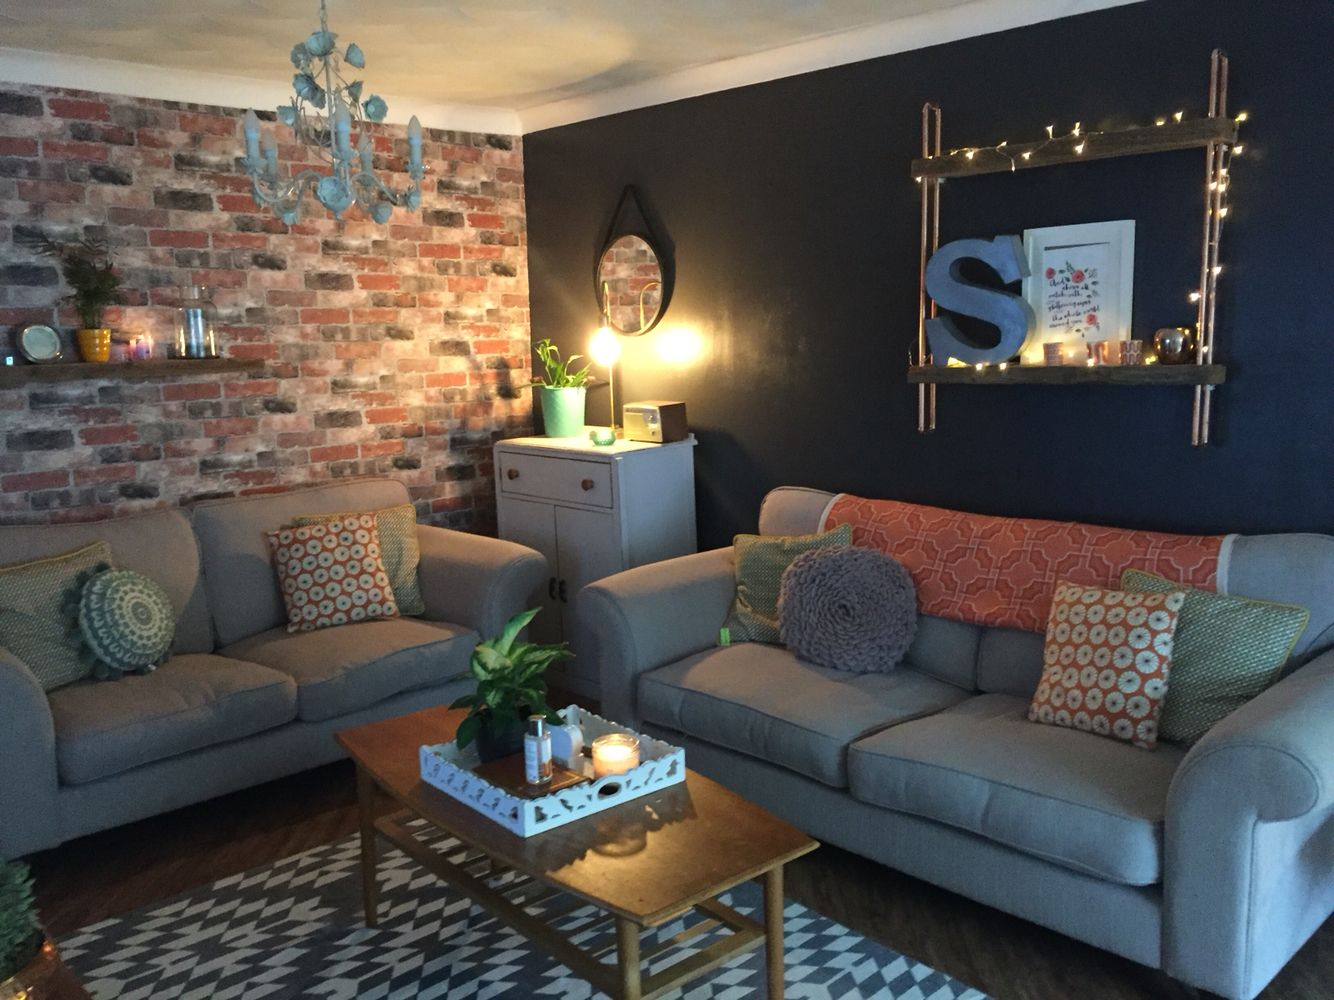 Industrial Grey Brick Wallpaper Living Room Brick Wallpaper Living Room Red Brick Wallpaper Living Room Brick Wallpaper Bedroom